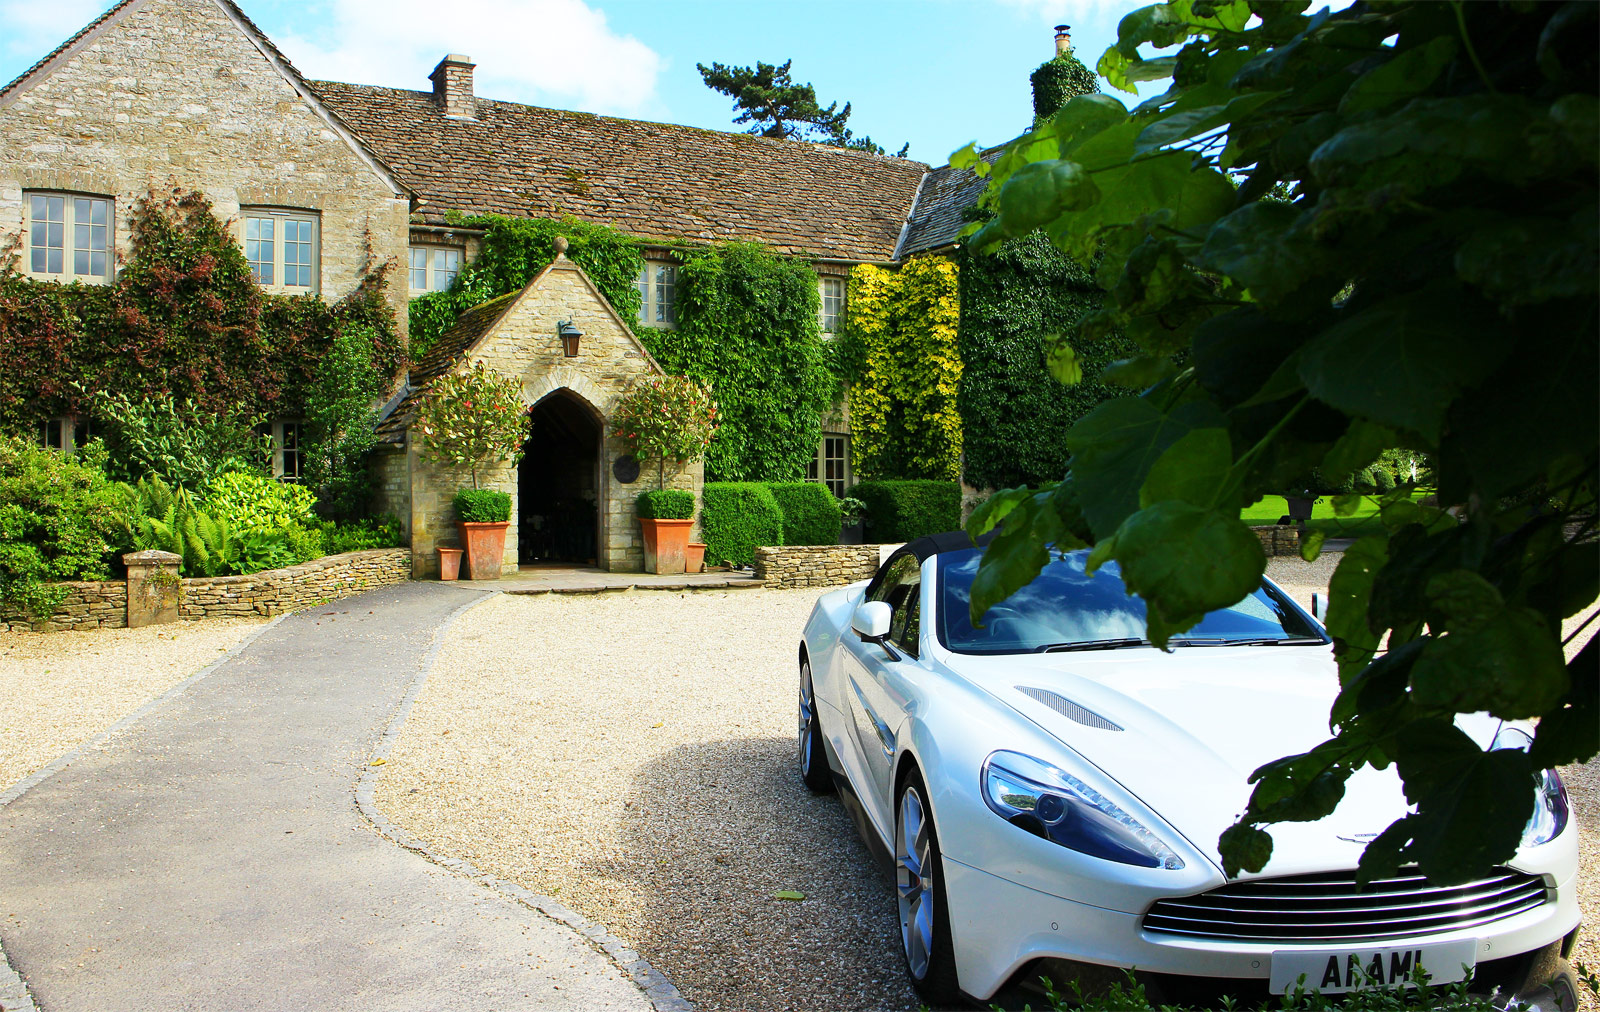 Calcot In the Cotswolds - A Lovely Rural Escape From The Daily Grind 4